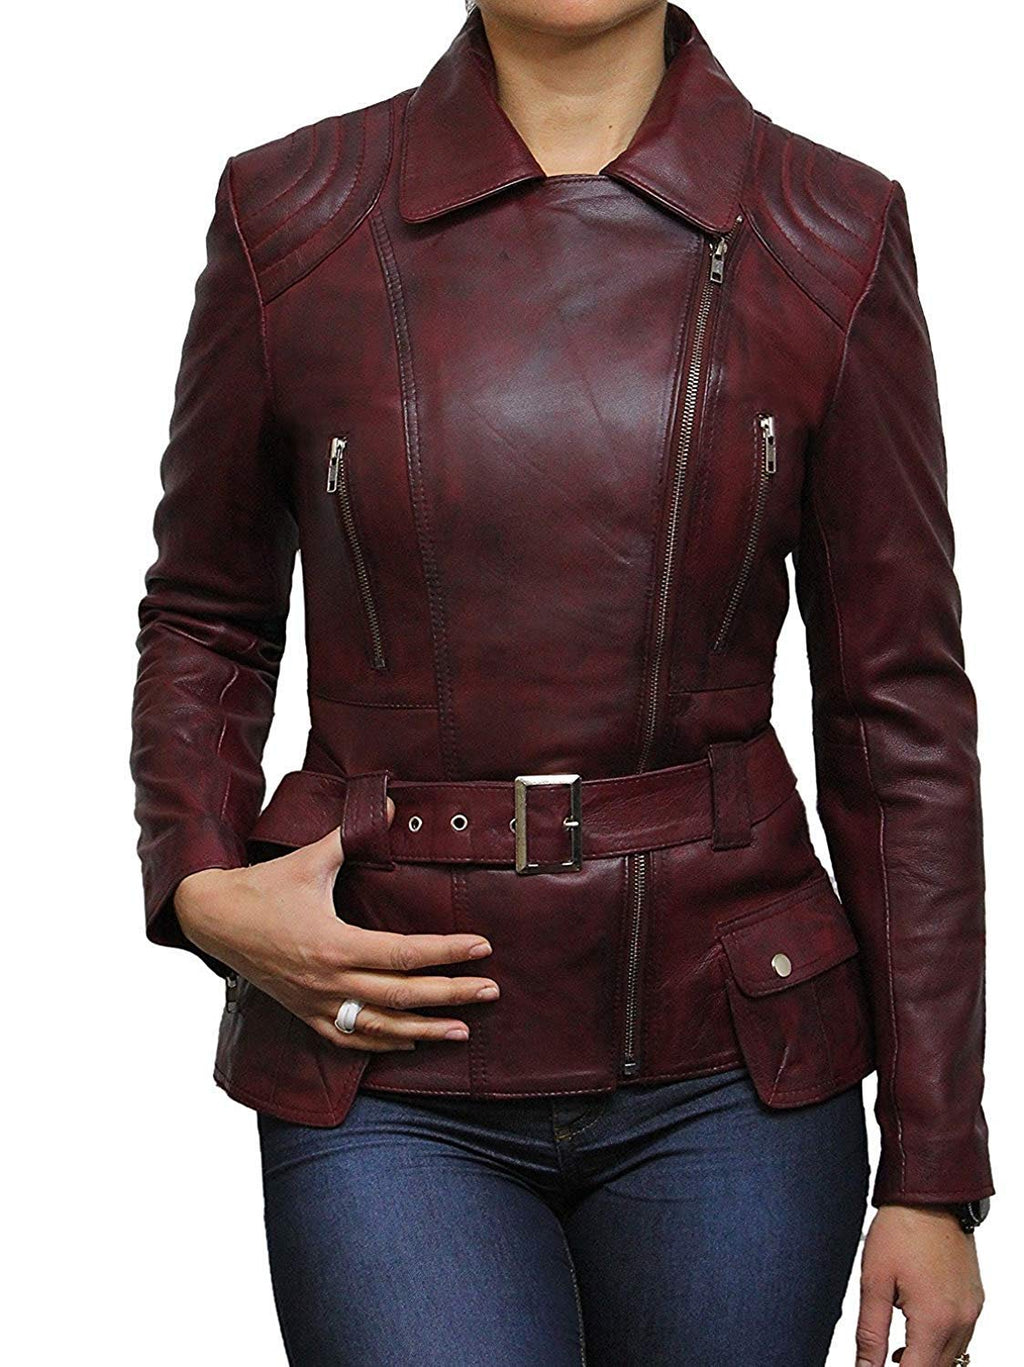 "BRANDSLOCK Womens Classic Leather Biker Jacket Genuine Goat Skin (3XL / 20 - (Fits Chest: 41-43""), Burgundy)"